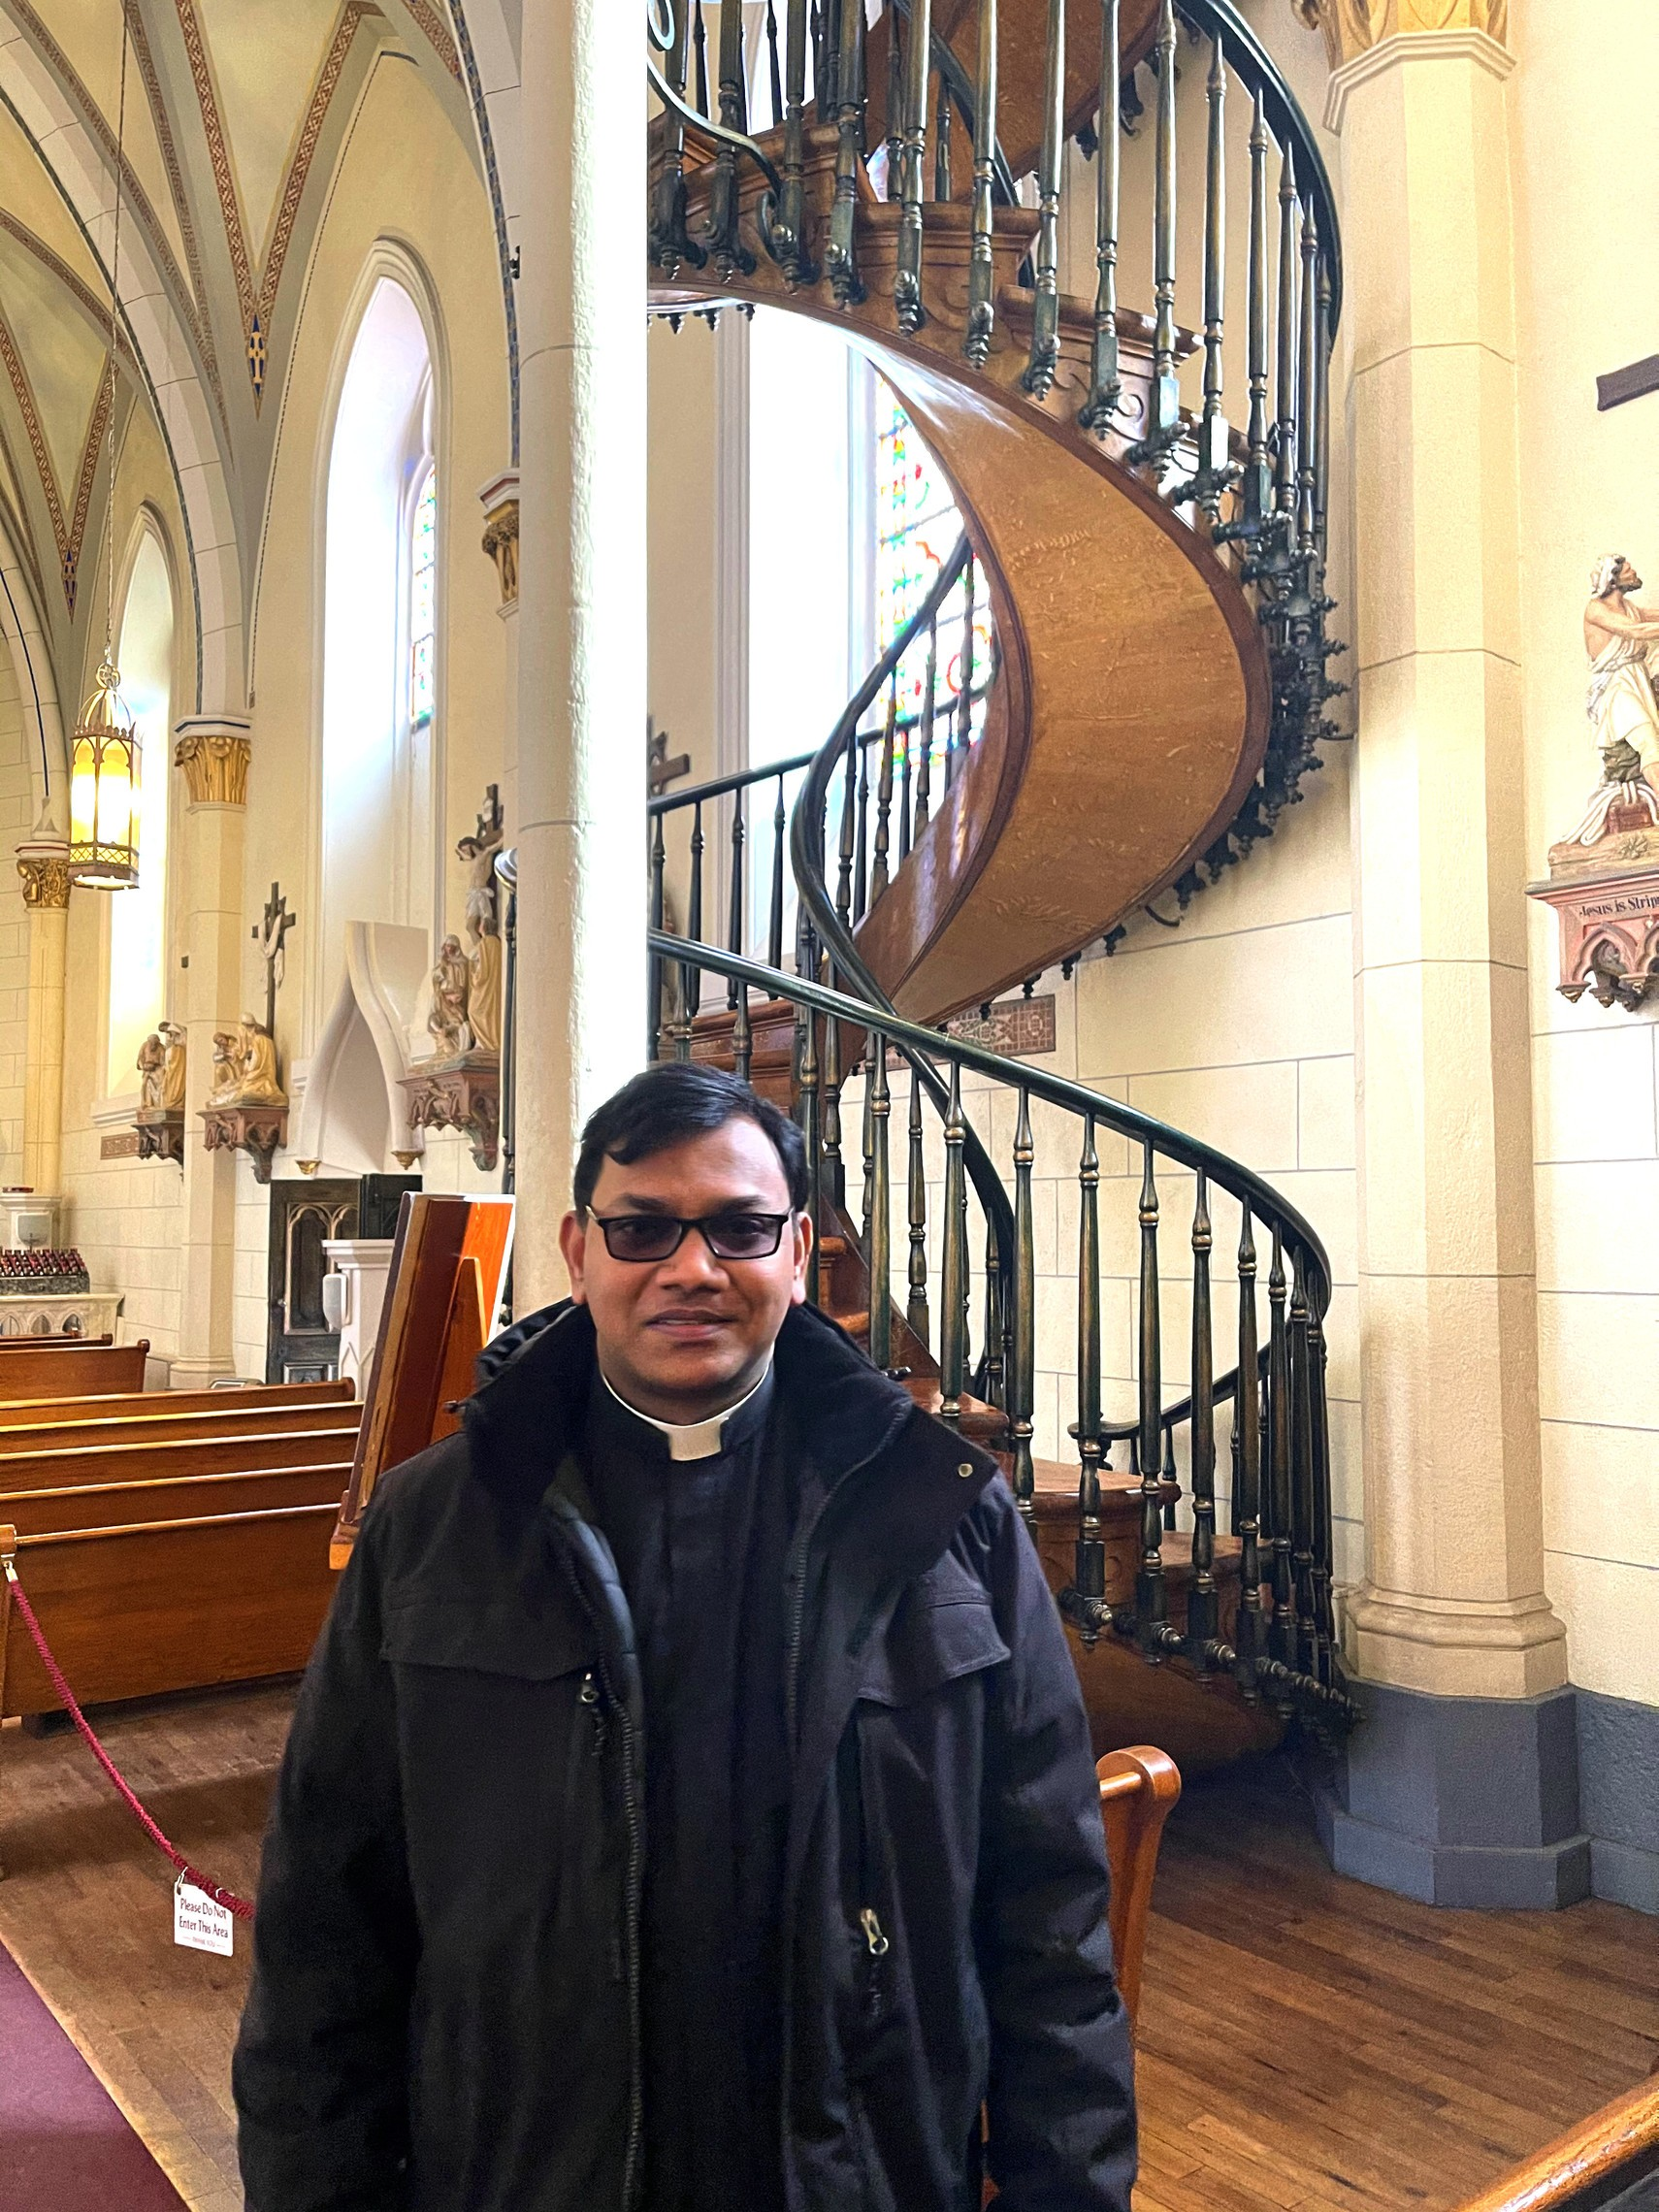 Fr Pasala and the St Joe Stairs